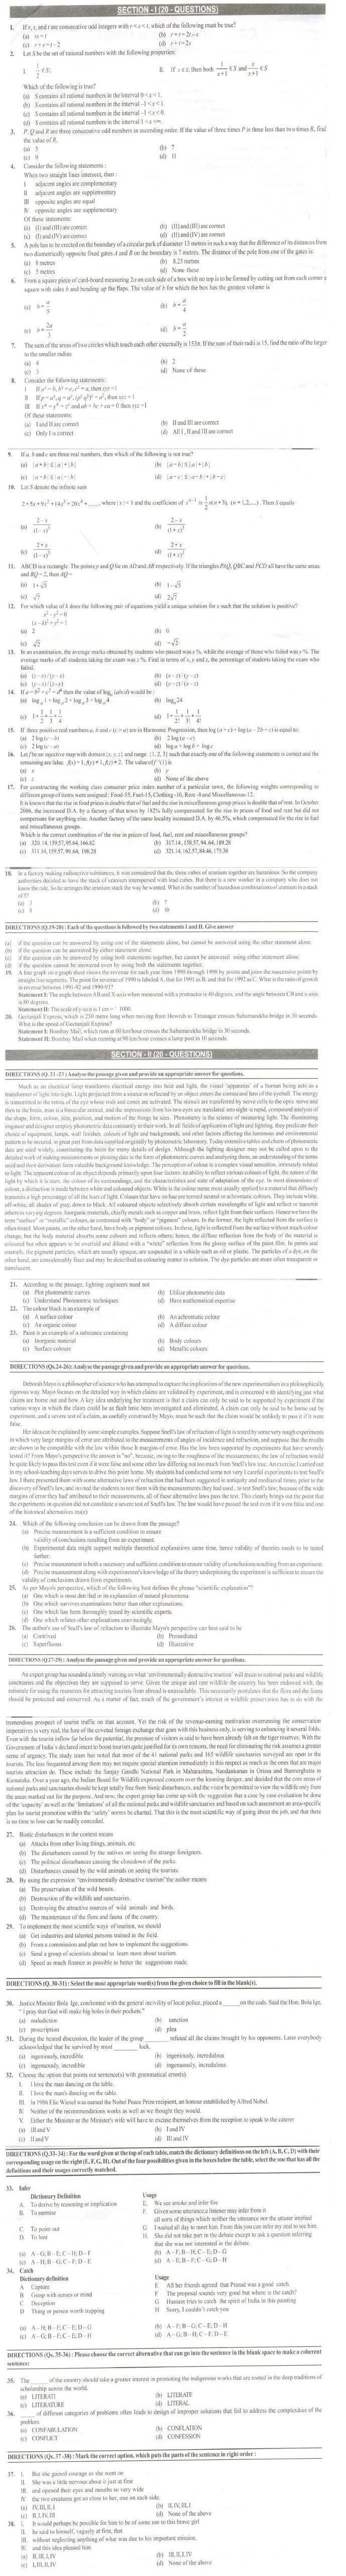 Cat Previous Papers Pdf